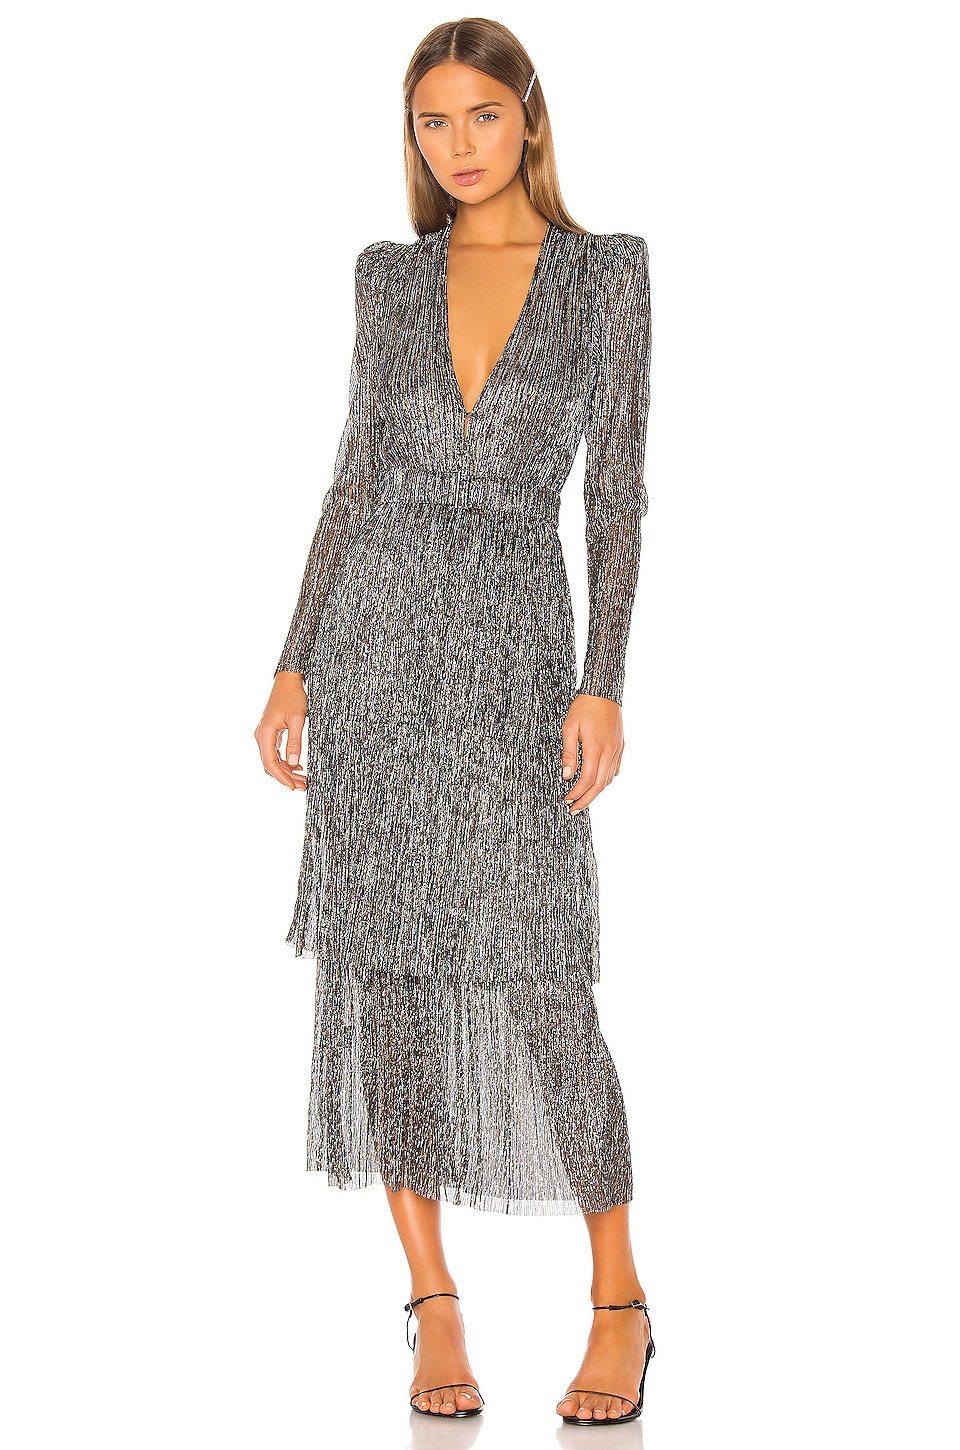 Sabina Musayev Carry Dress in Multicolor Silver